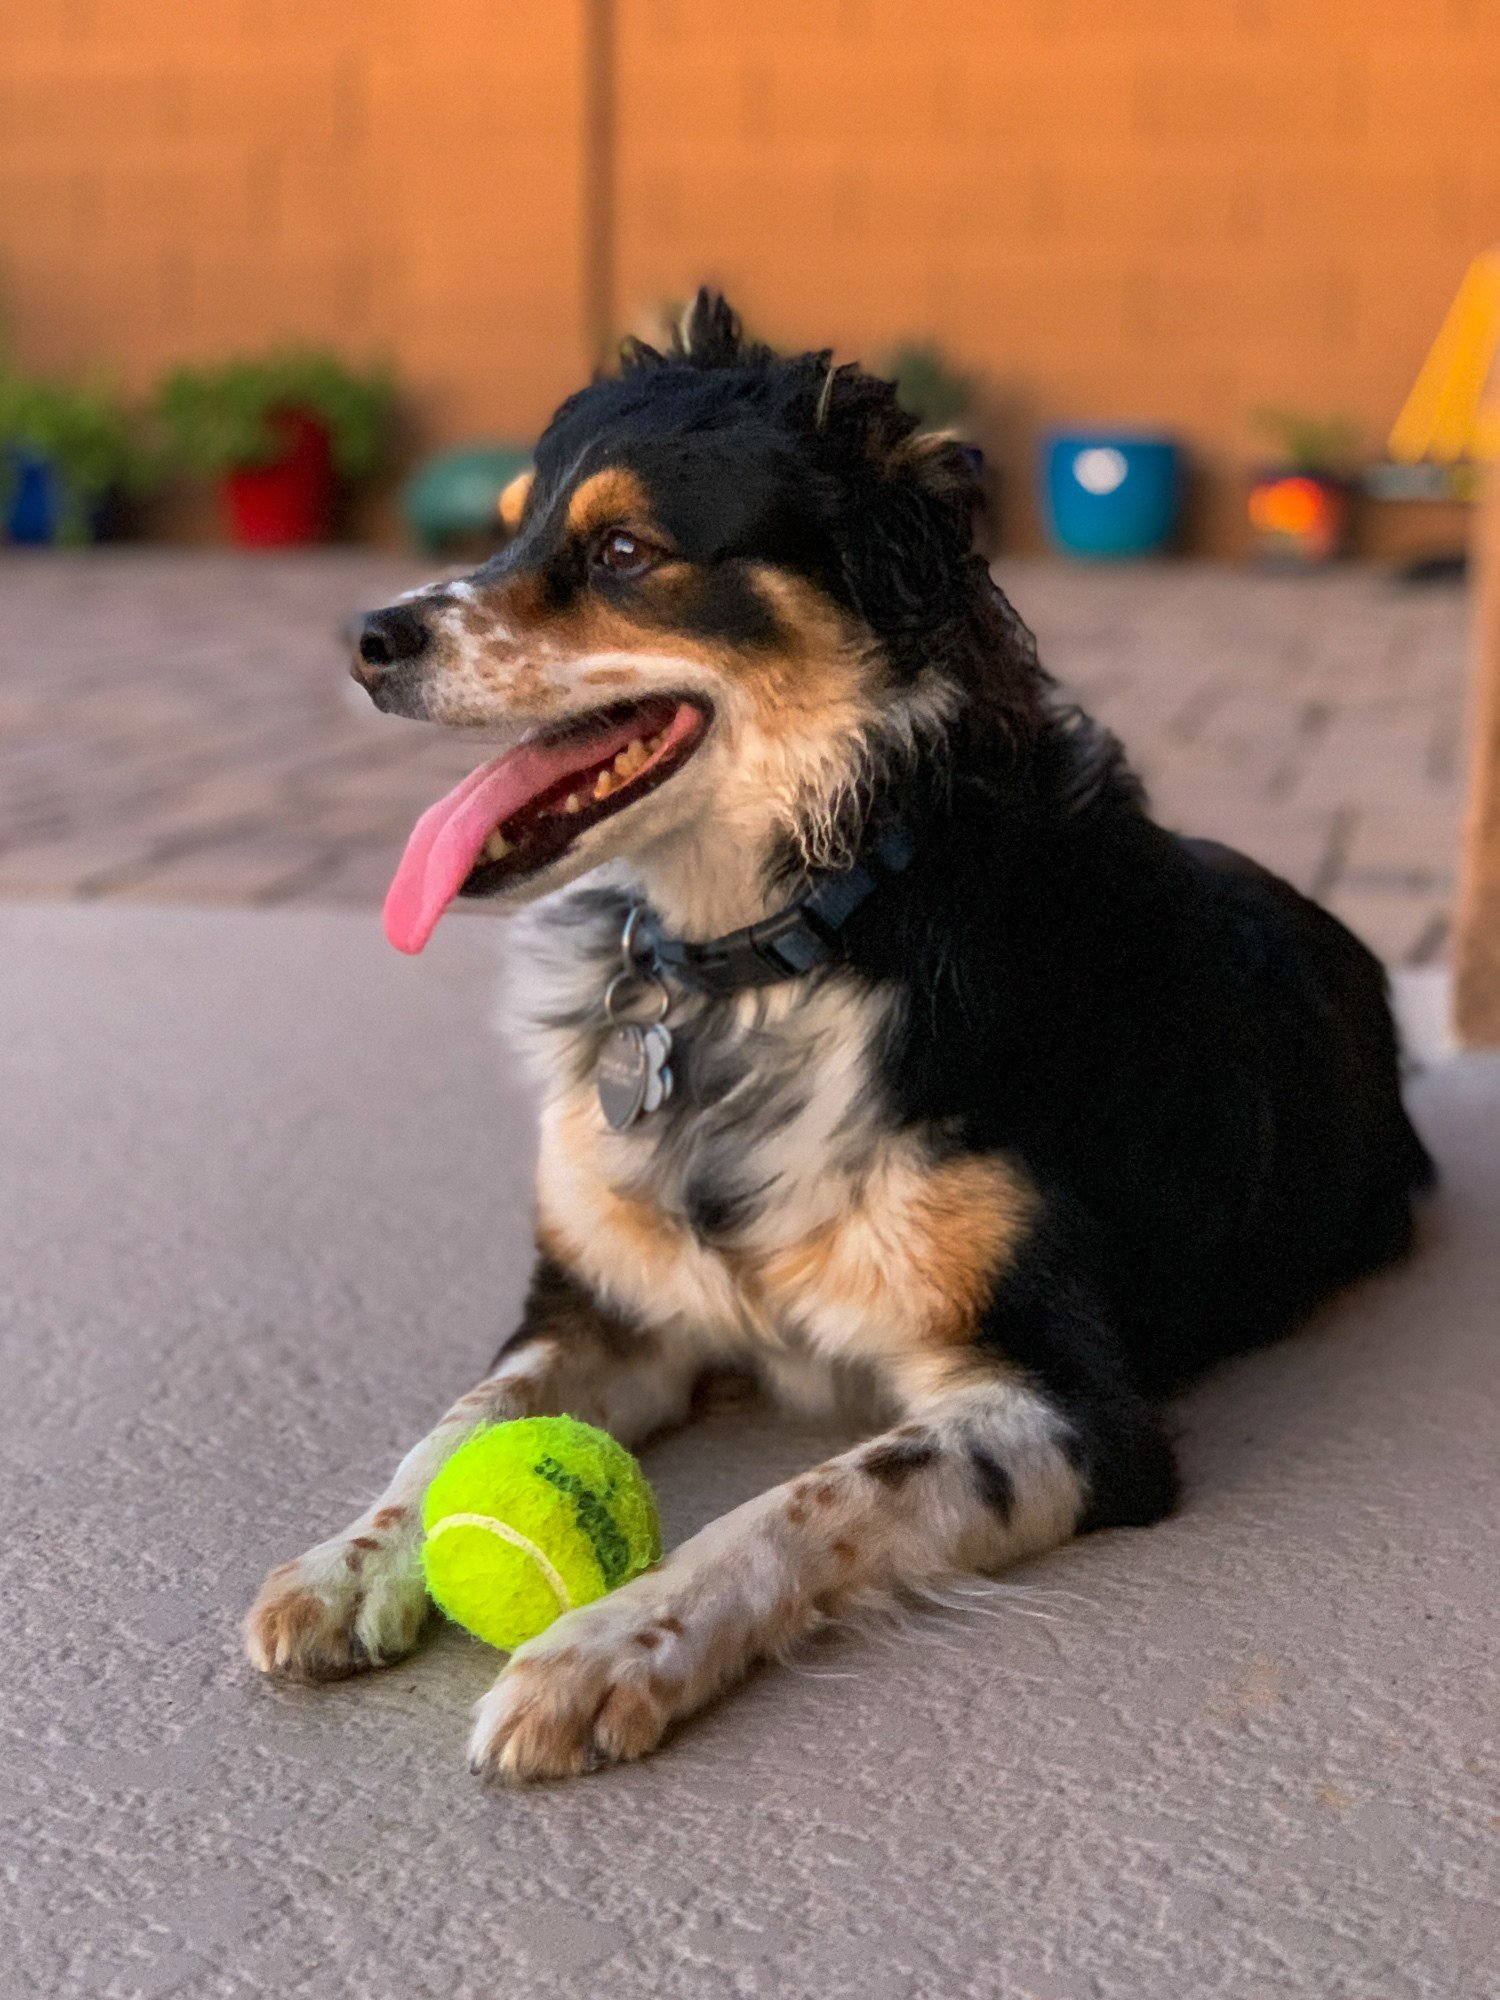 Dog in backyard with ball